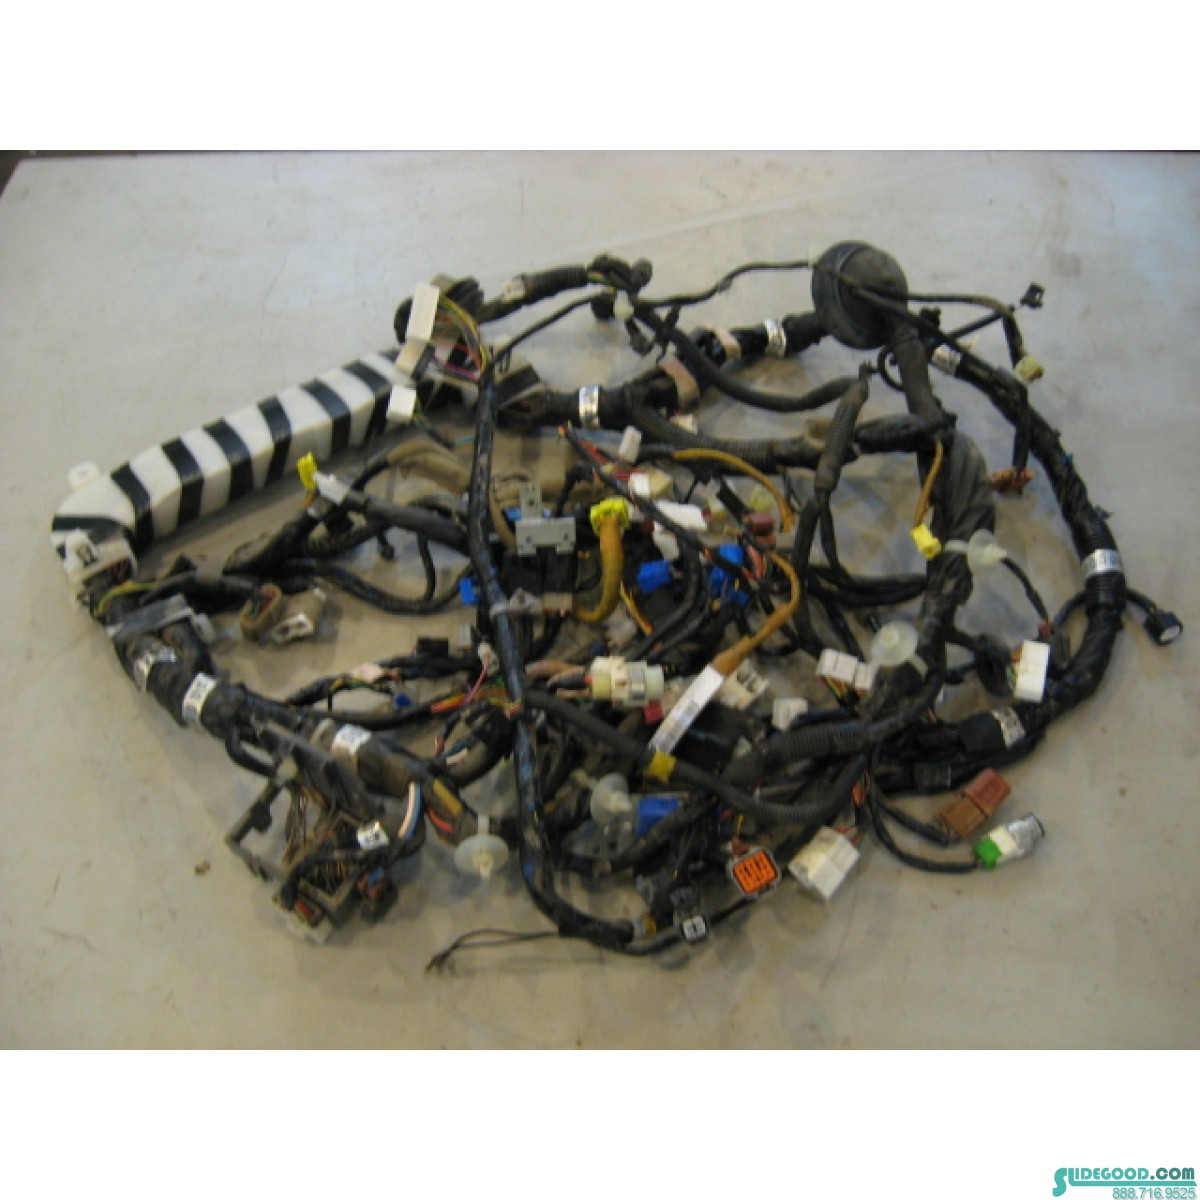 Subaru Wrx Wiring Harness Electrical Diagram House 2005